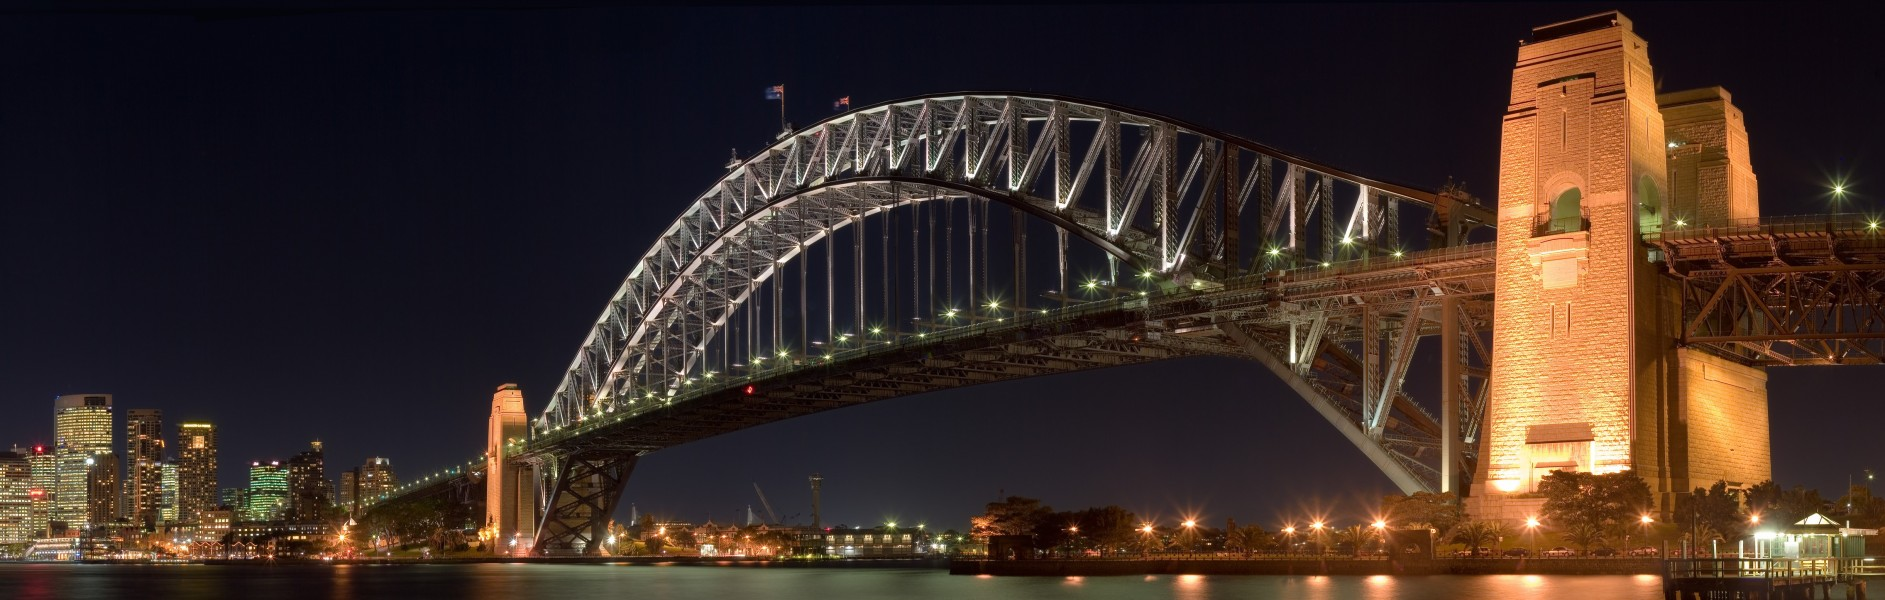 Sydney Harbour Bridge night croped